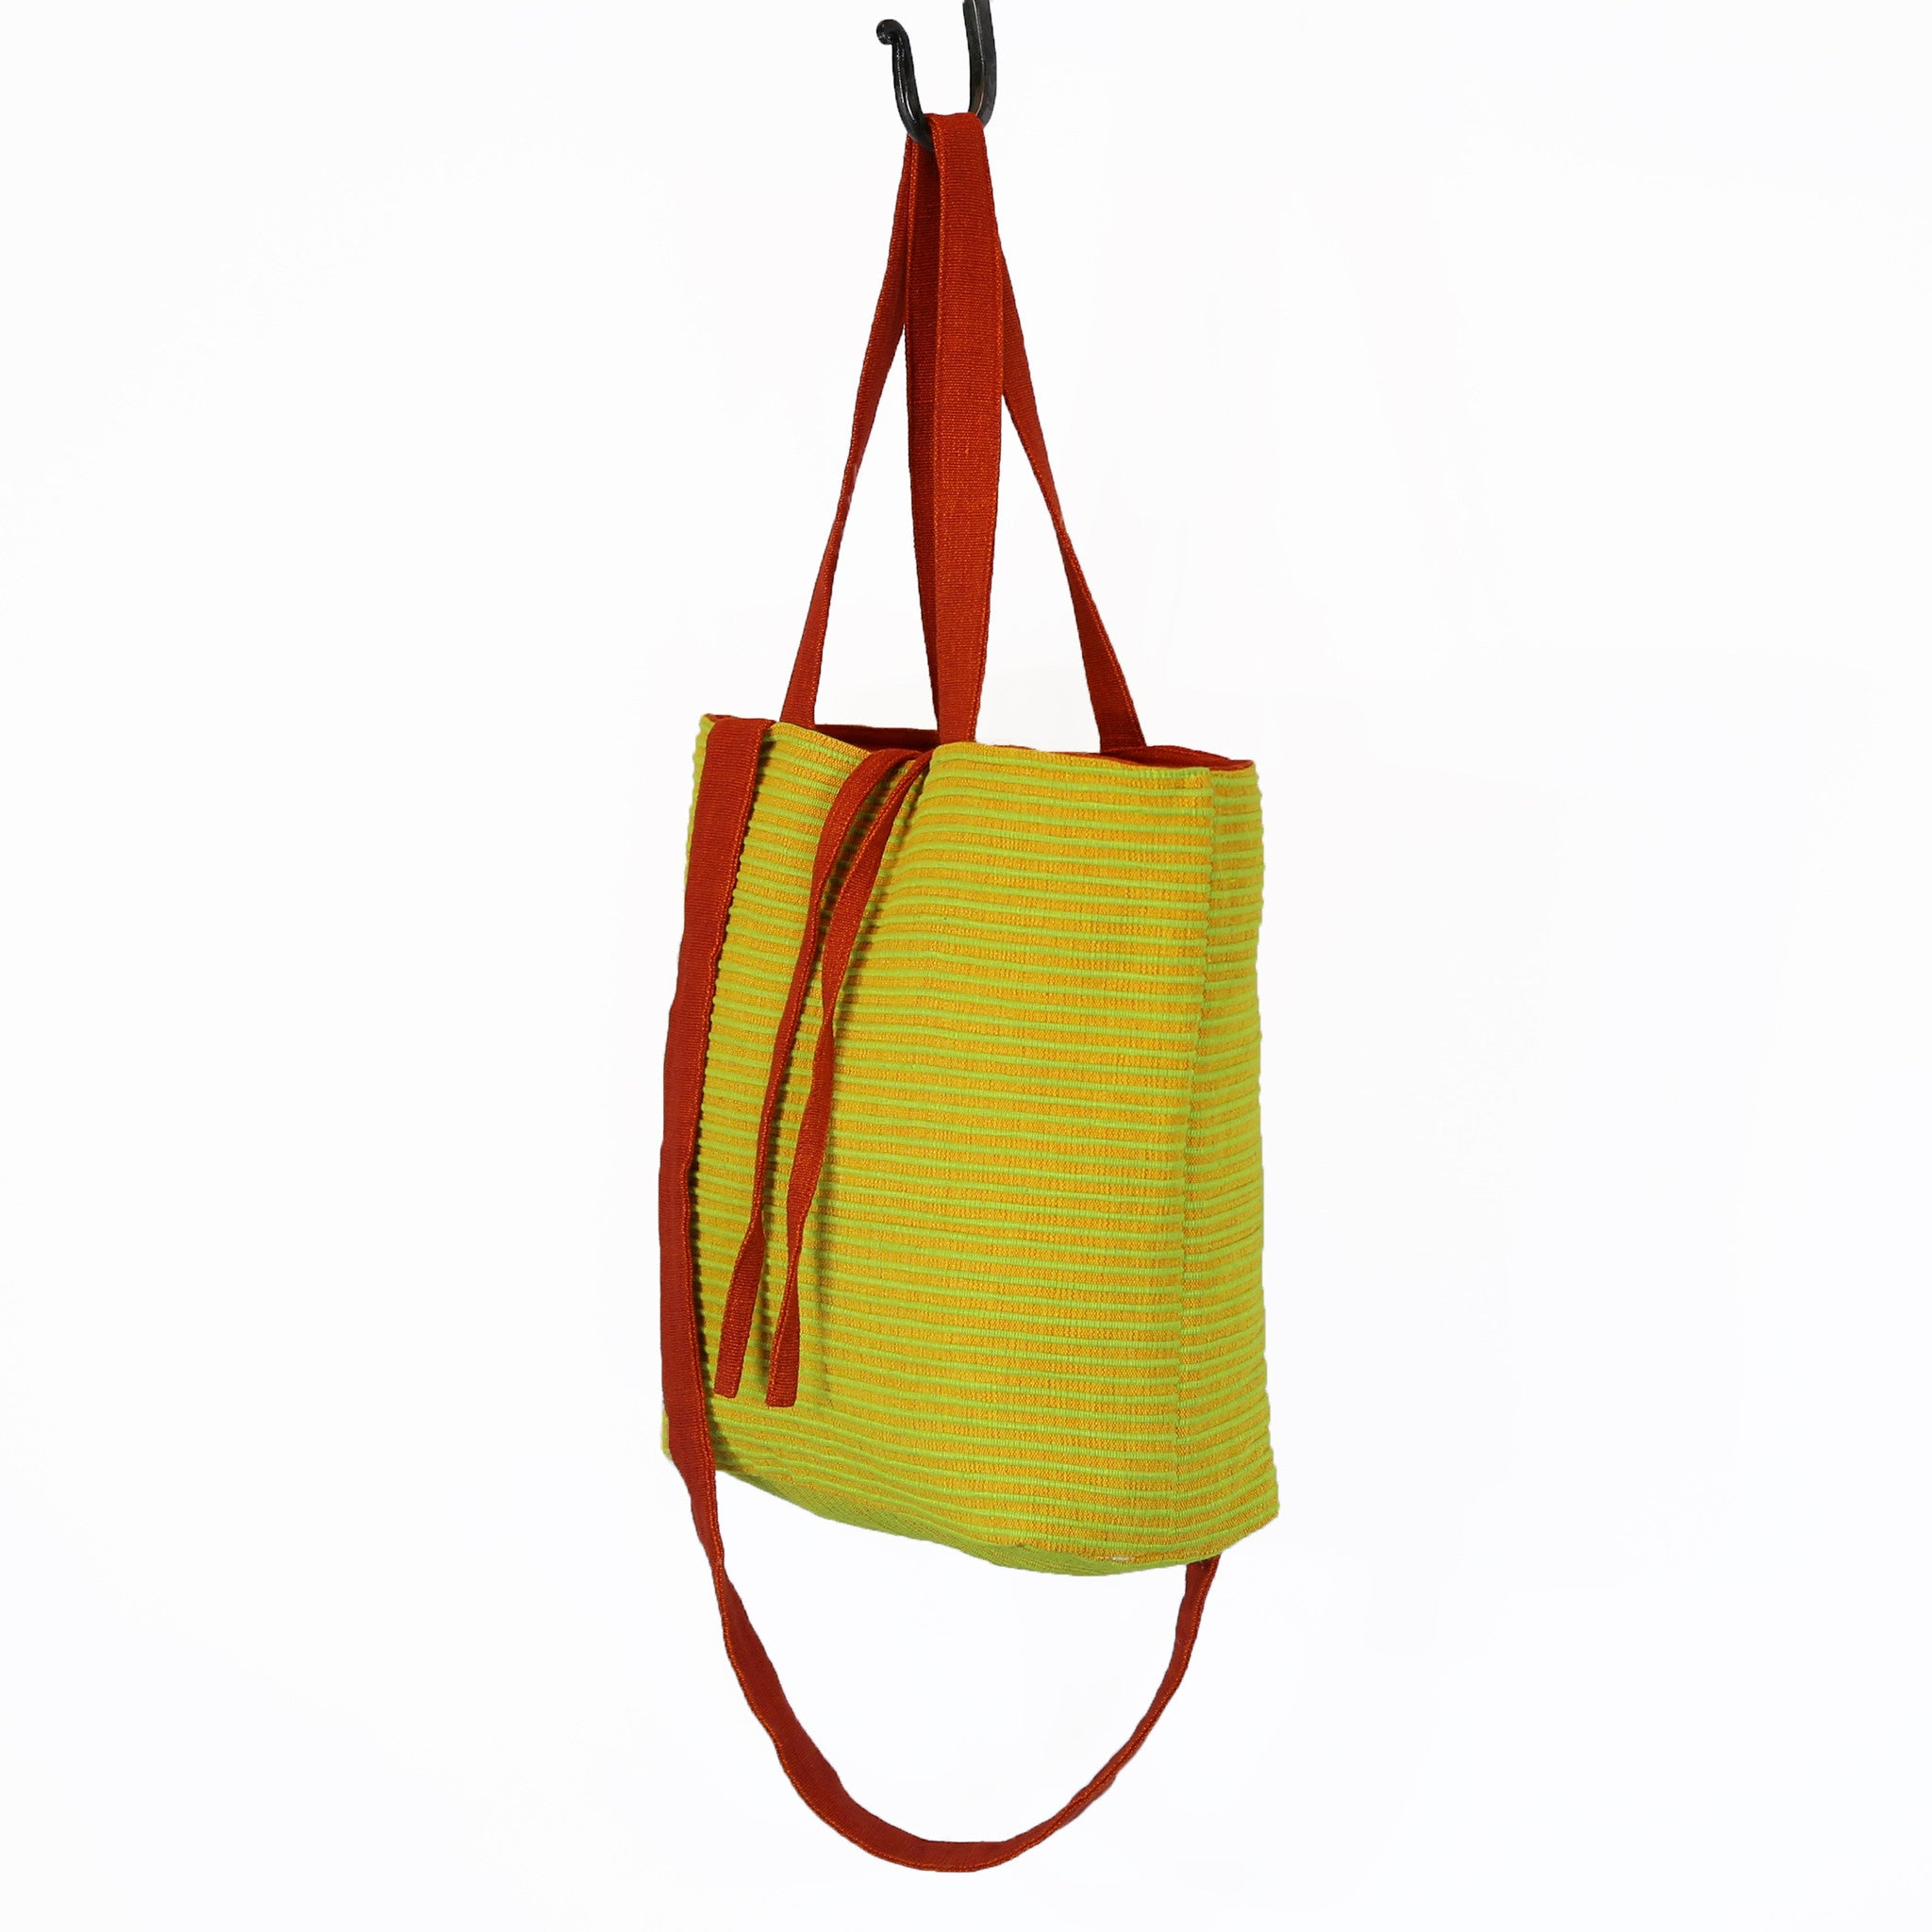 The Everyday Crossbody/Tote – Lemonaide fabric shown